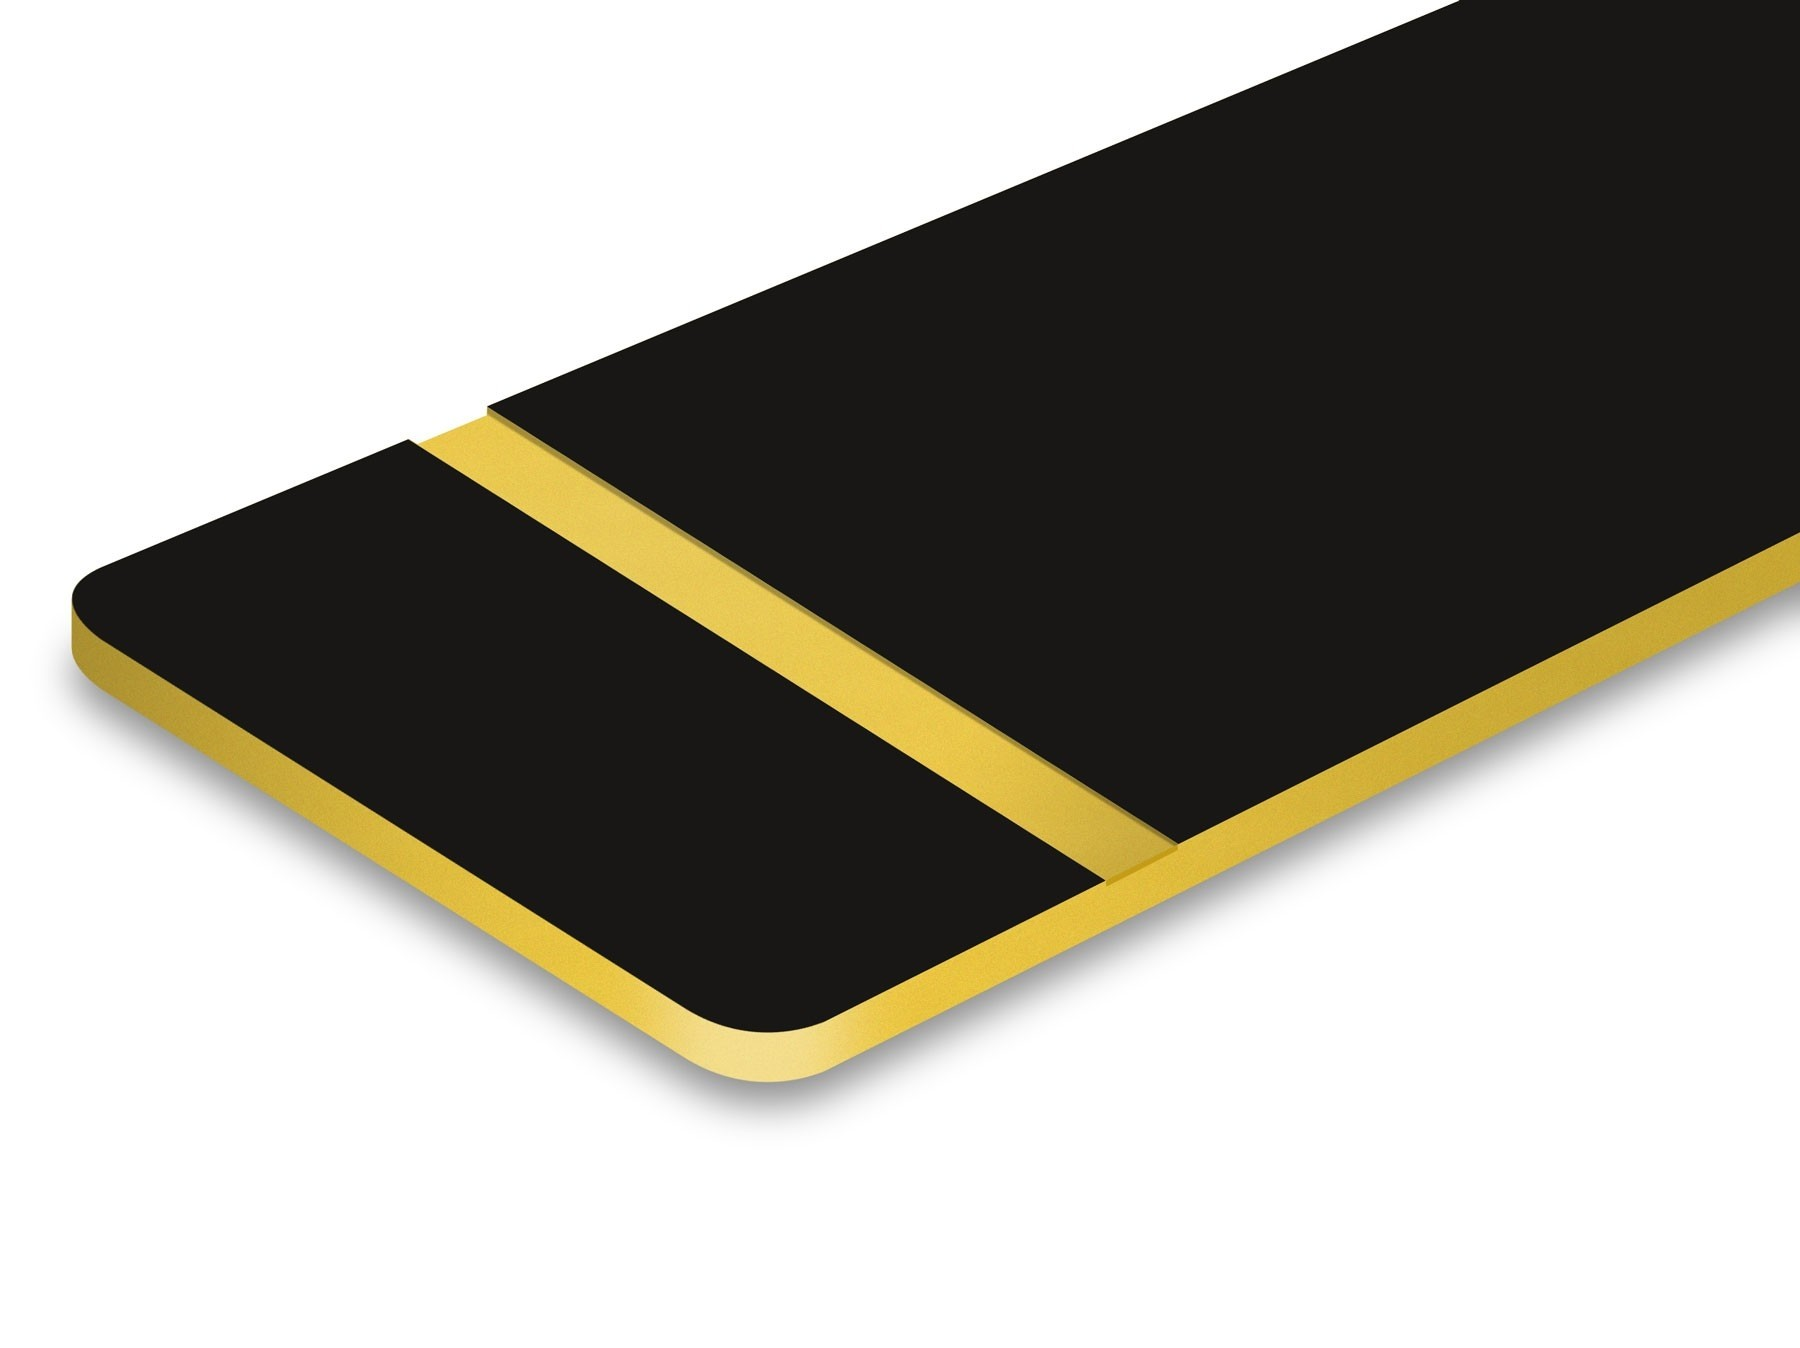 TroLase, Matte Black/Gold, 2ply, 1.6 mm